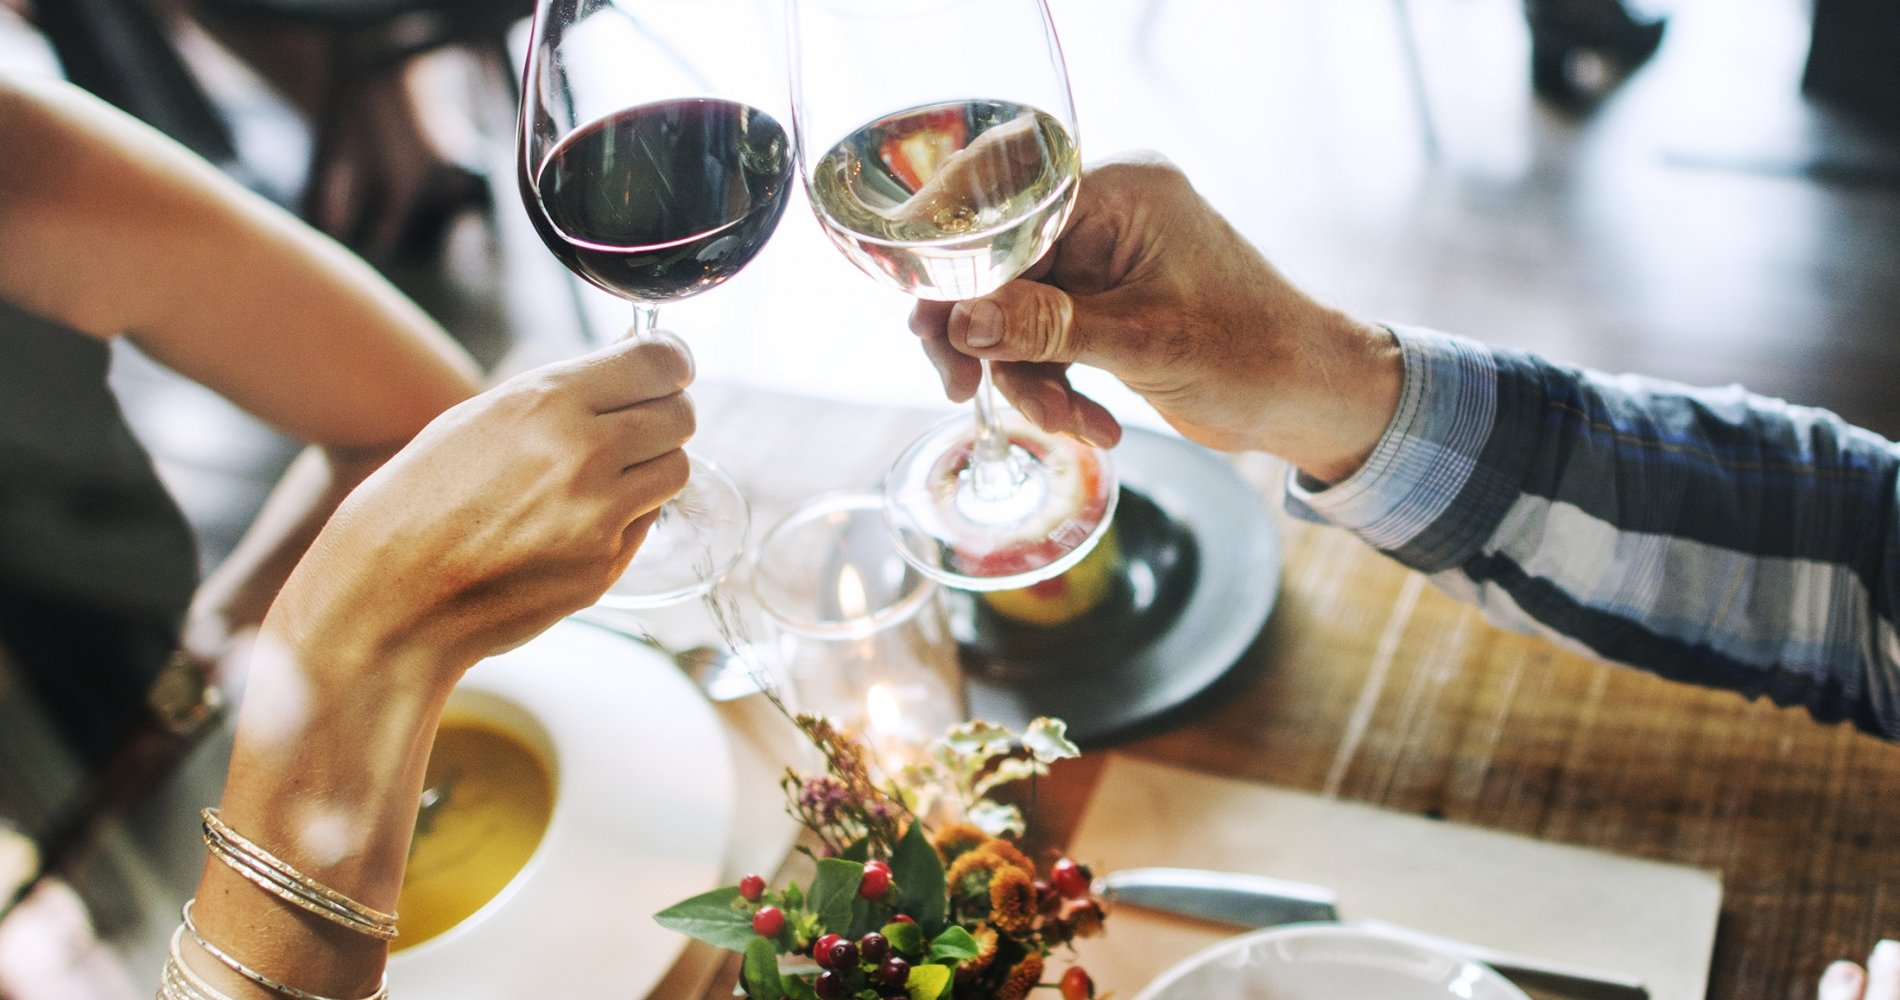 A woman's hand holding a glass of red wine and a man's hand holding a glass of white wine cheers over a wooden table set with white dishes.